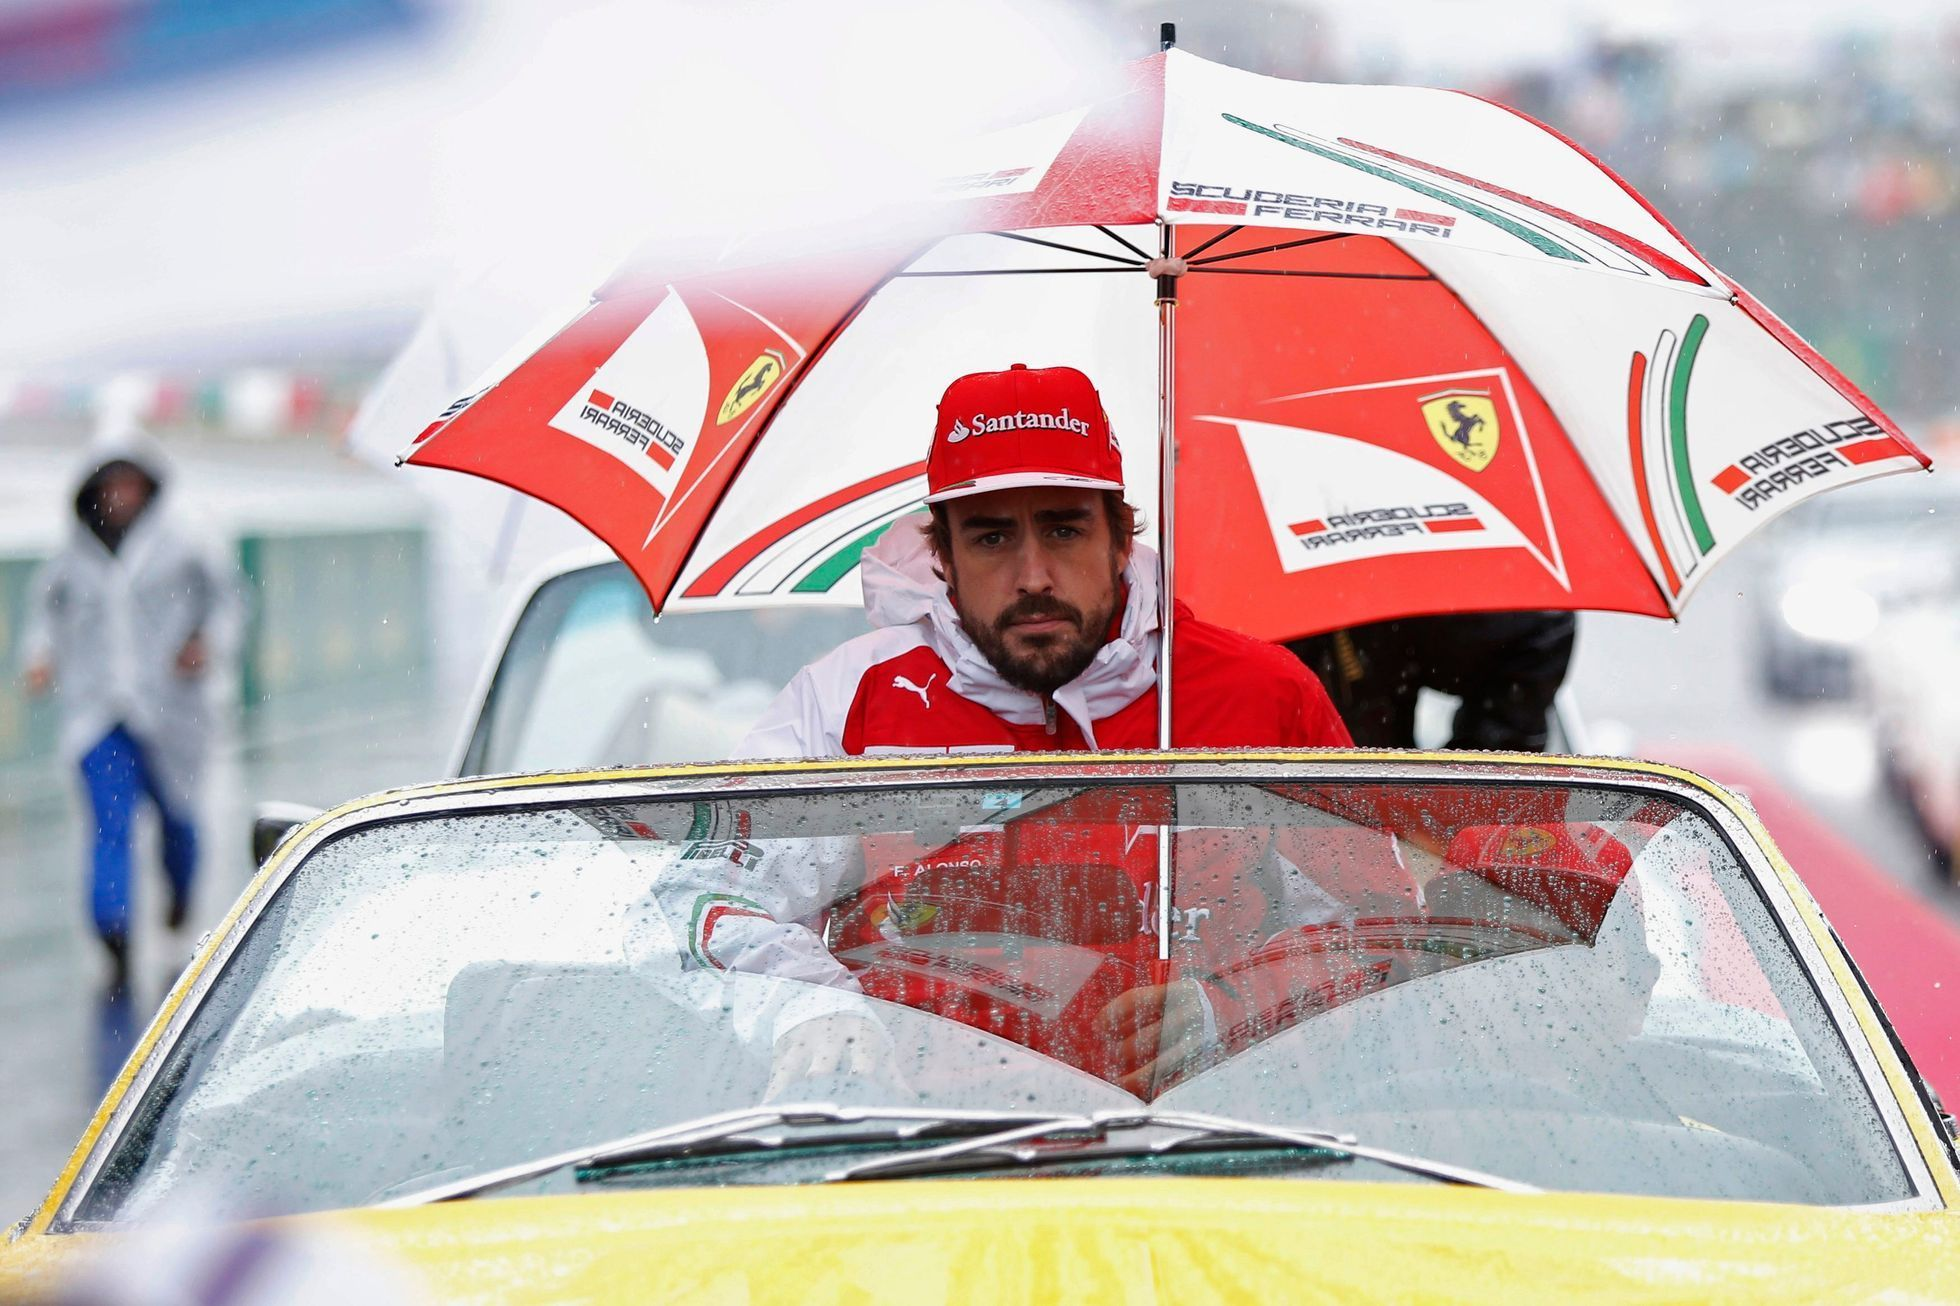 Ferrari Formula One driver Fernando Alonso of Spain sits under an umbrella during the drivers' parade ahead of the Japanese F1 Grand Prix at the Suzuka Circuit